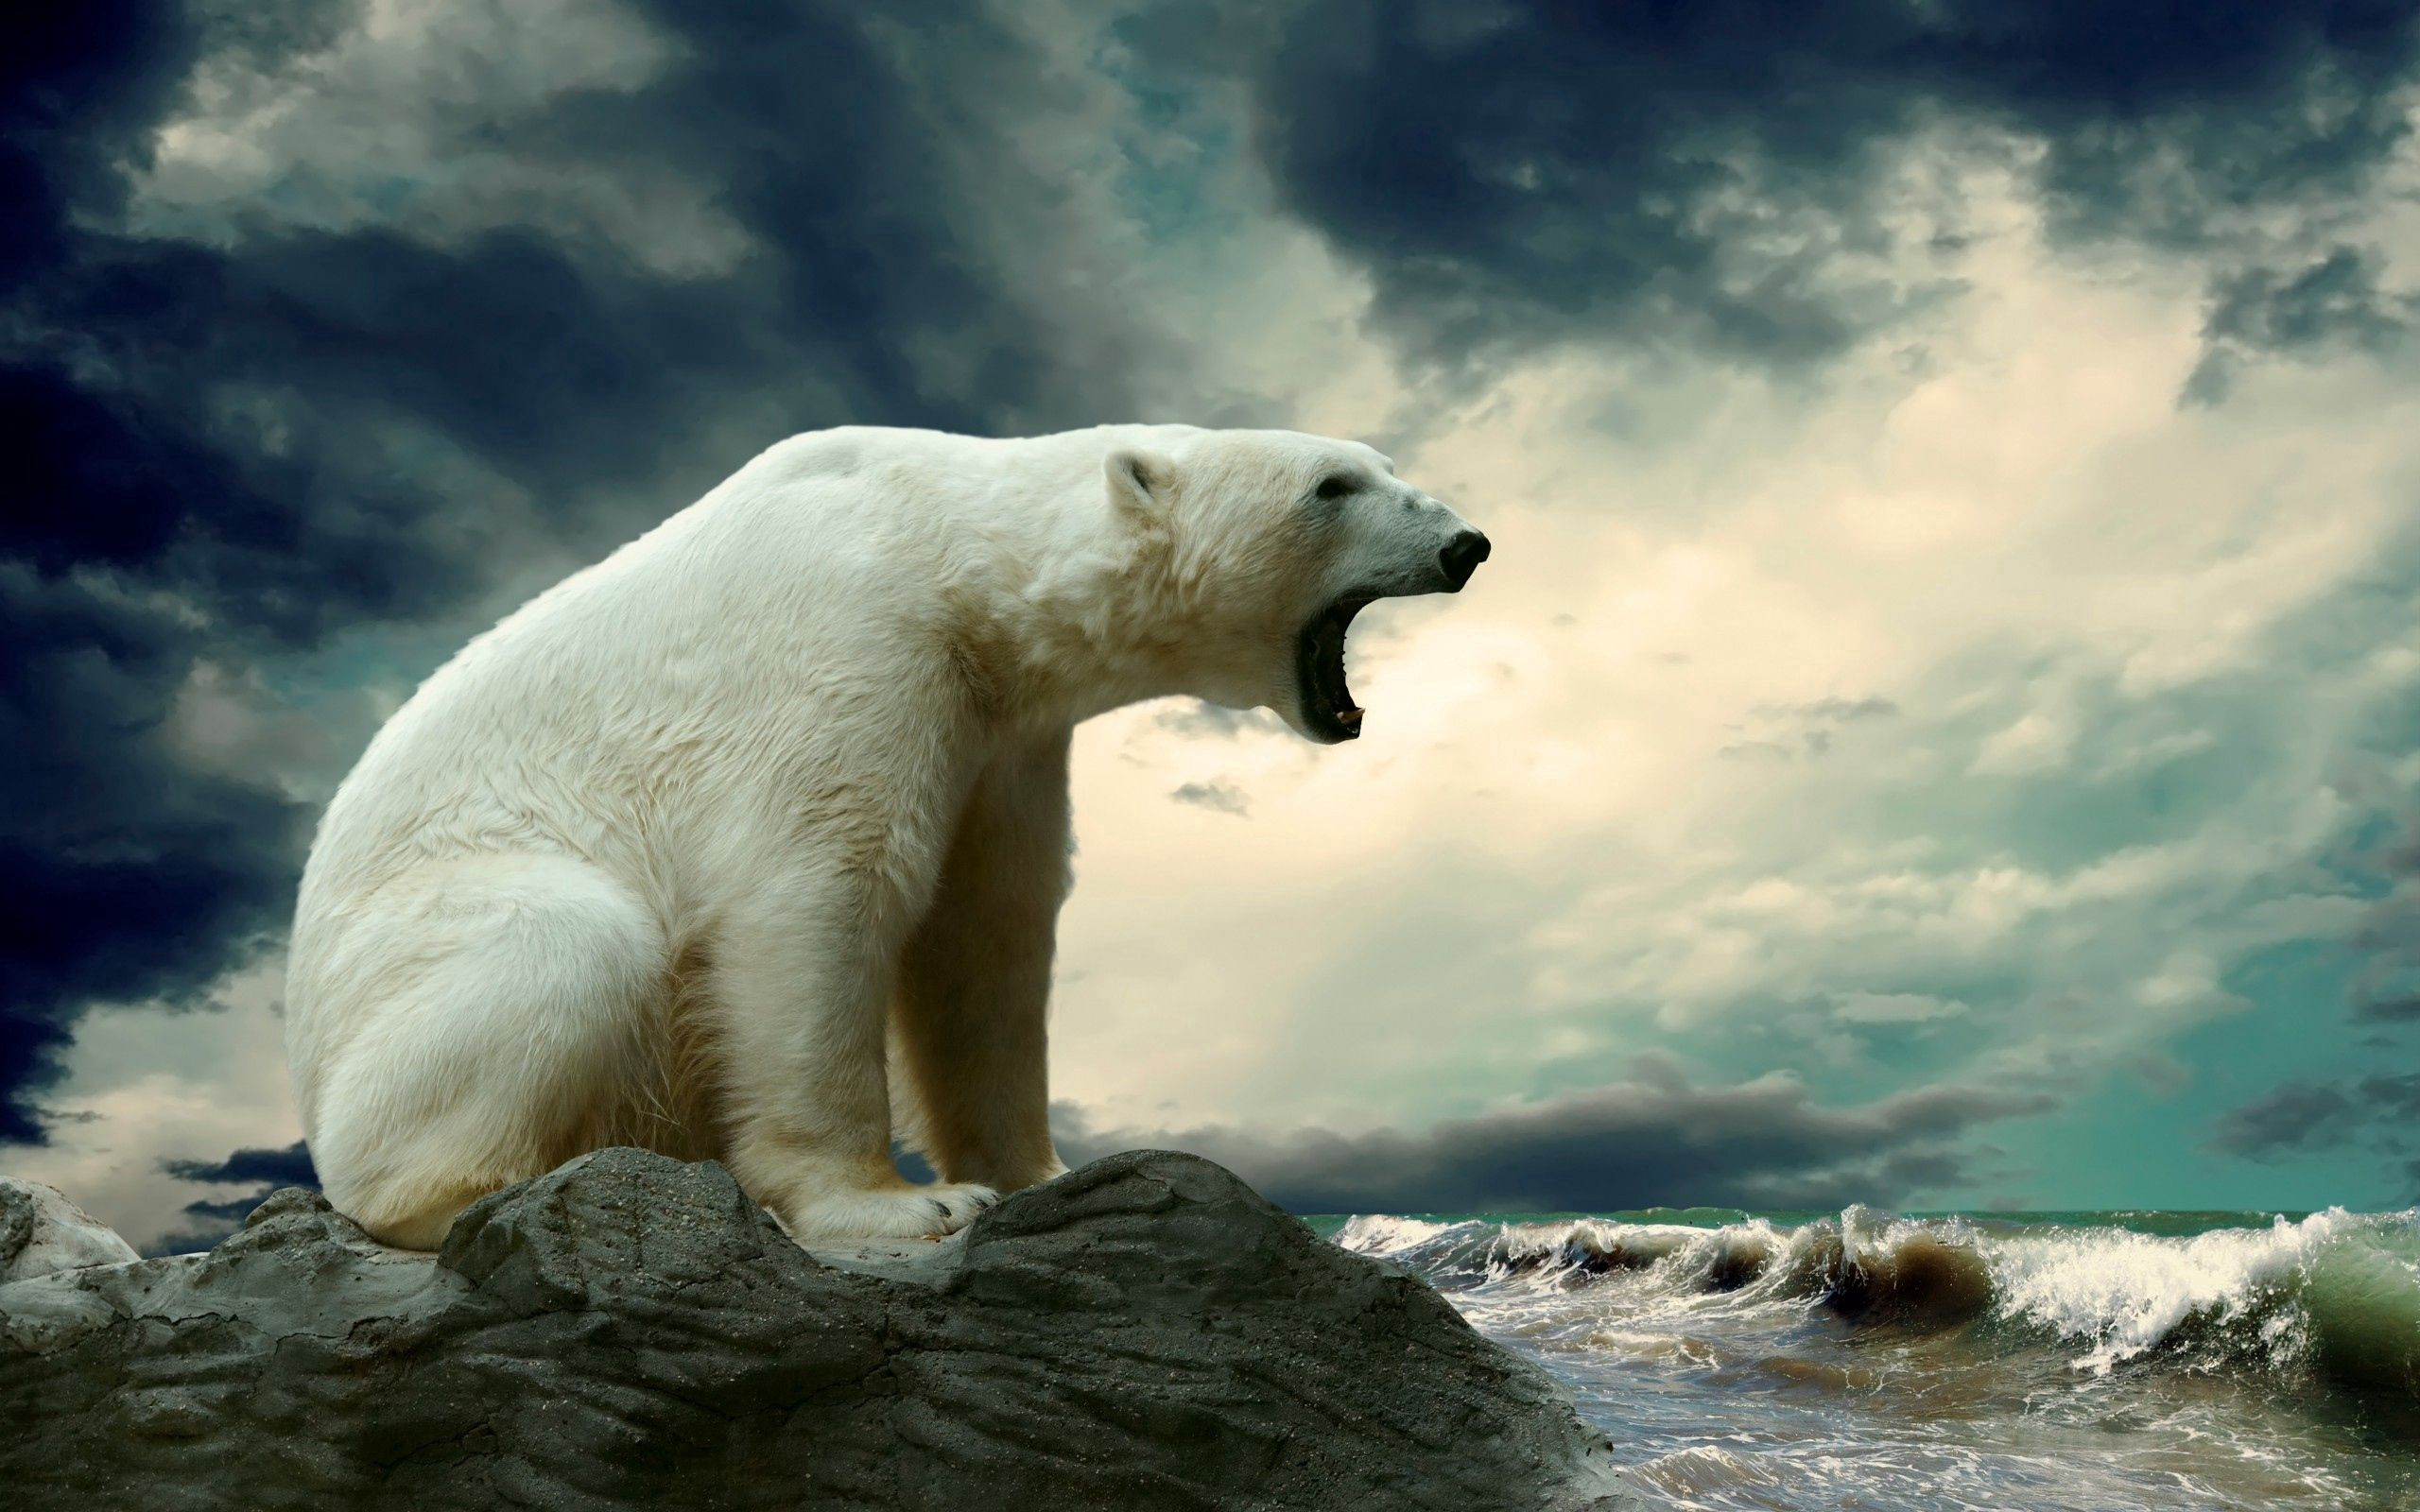 65994 download wallpaper Animals, Water, Sit, Fat, Thick, Polar Bear screensavers and pictures for free